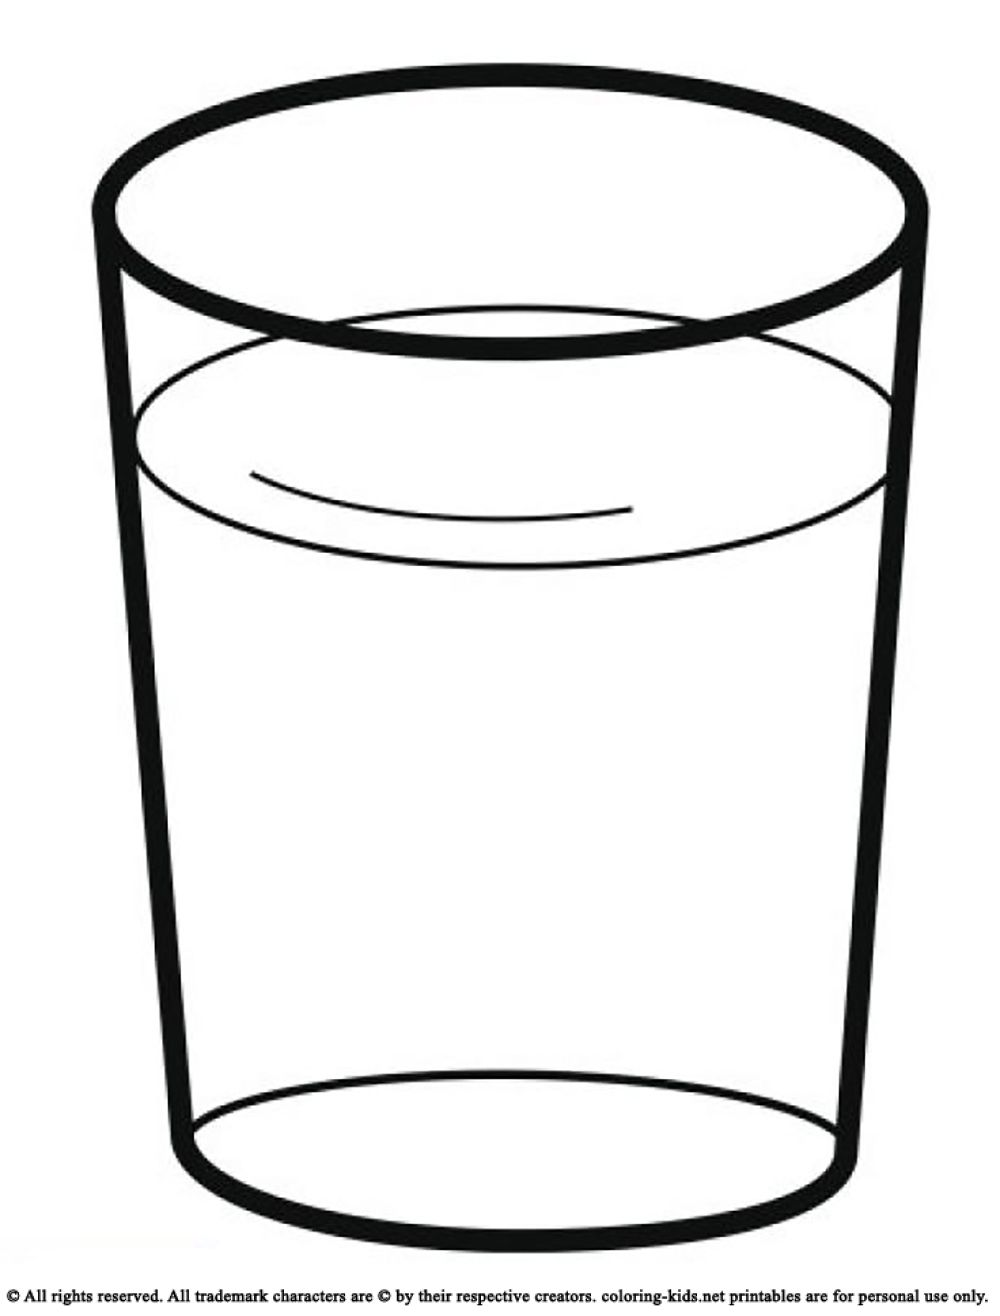 Coloring pages water - Drink A Glass Of Water Summer Craftslemonadecoloring Pages Milktemplatesdrinks